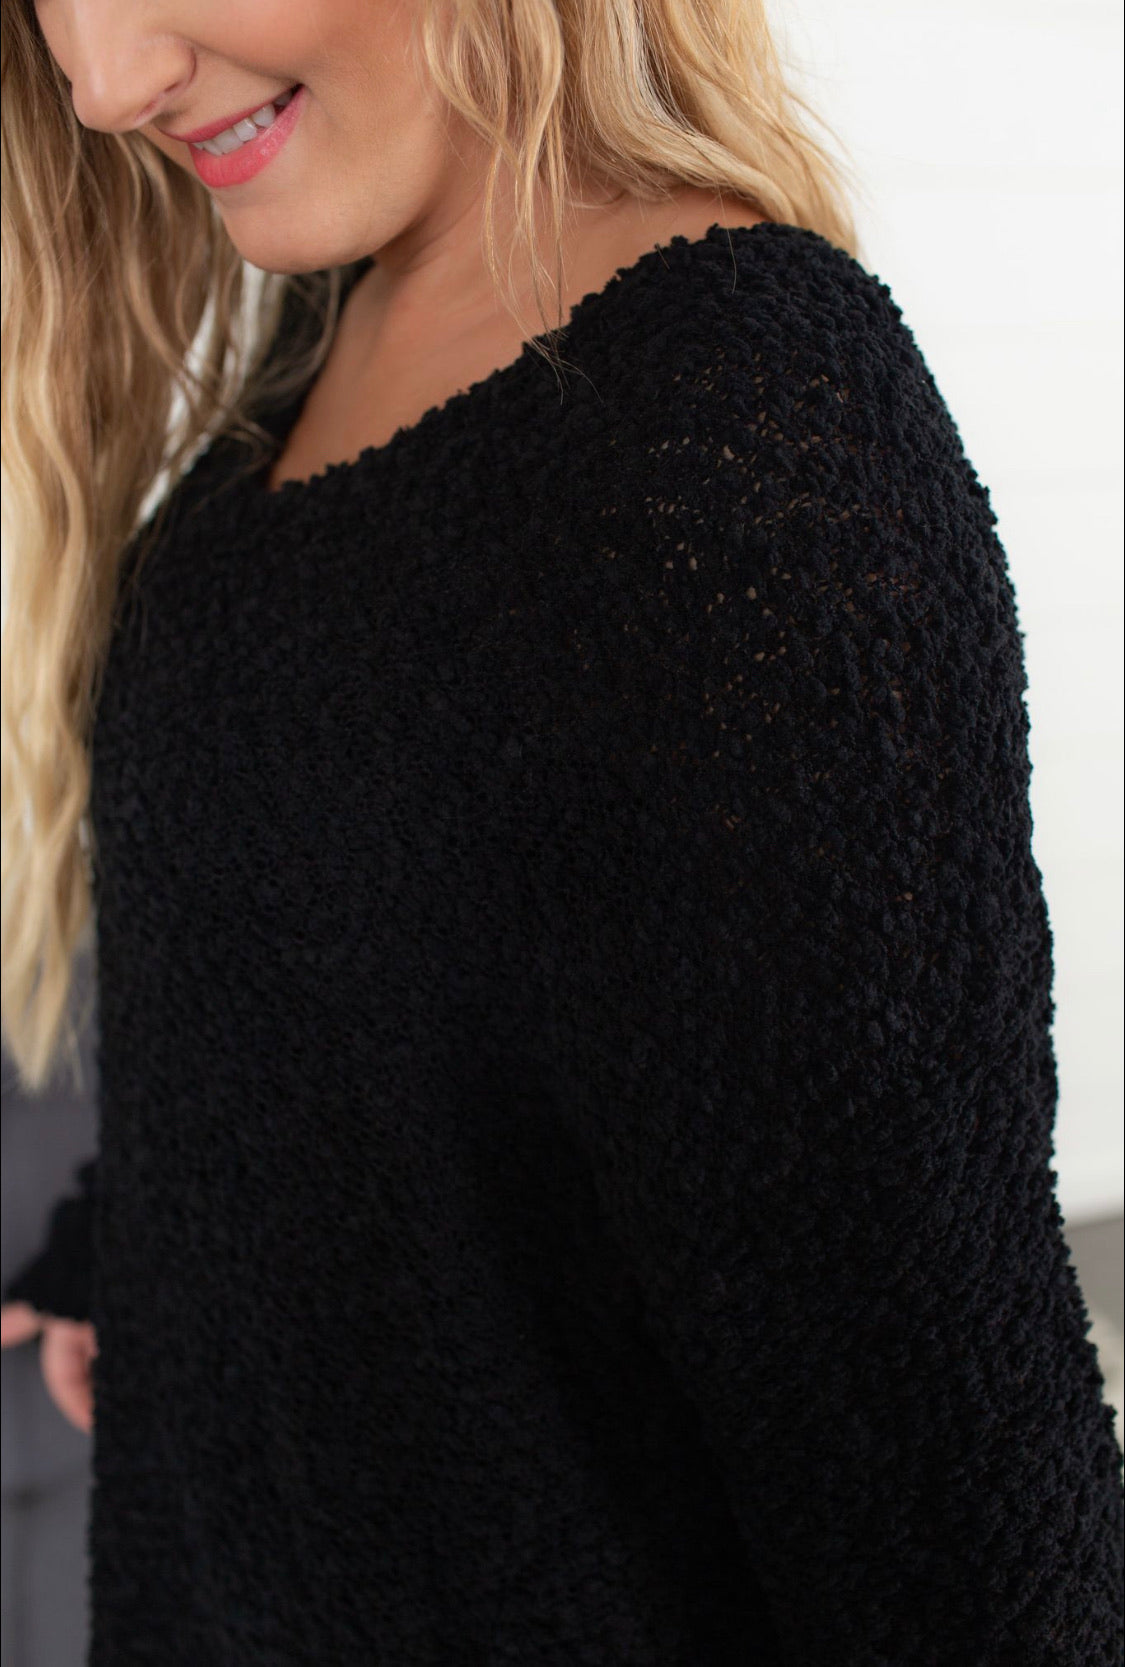 V Neck Popcorn Sweater - Black